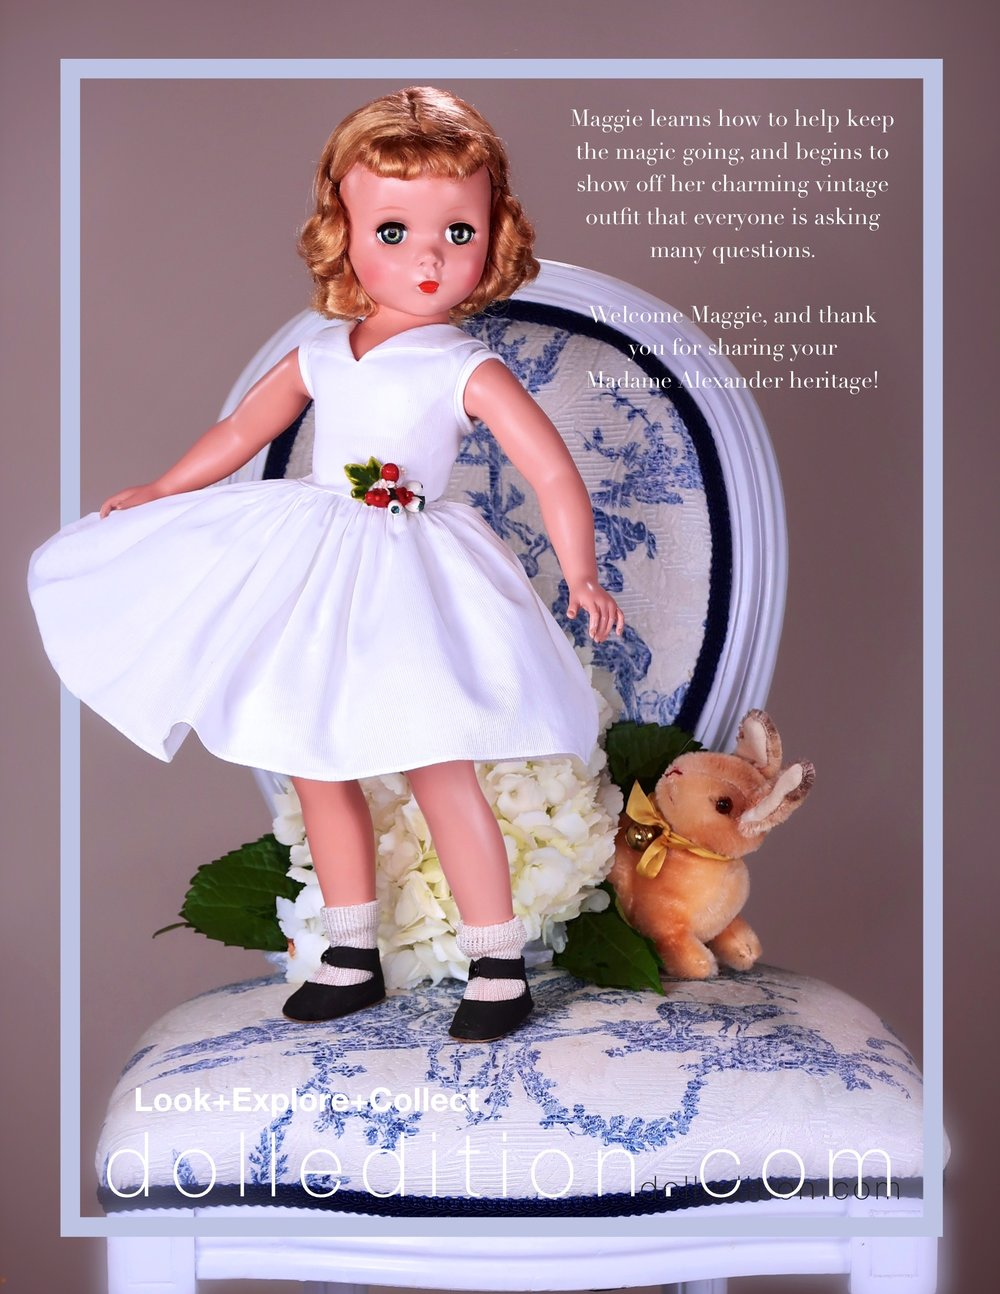 White Pique cotton summer dress and floral accents with matching pique underpants. Tagged: Madame Alexander